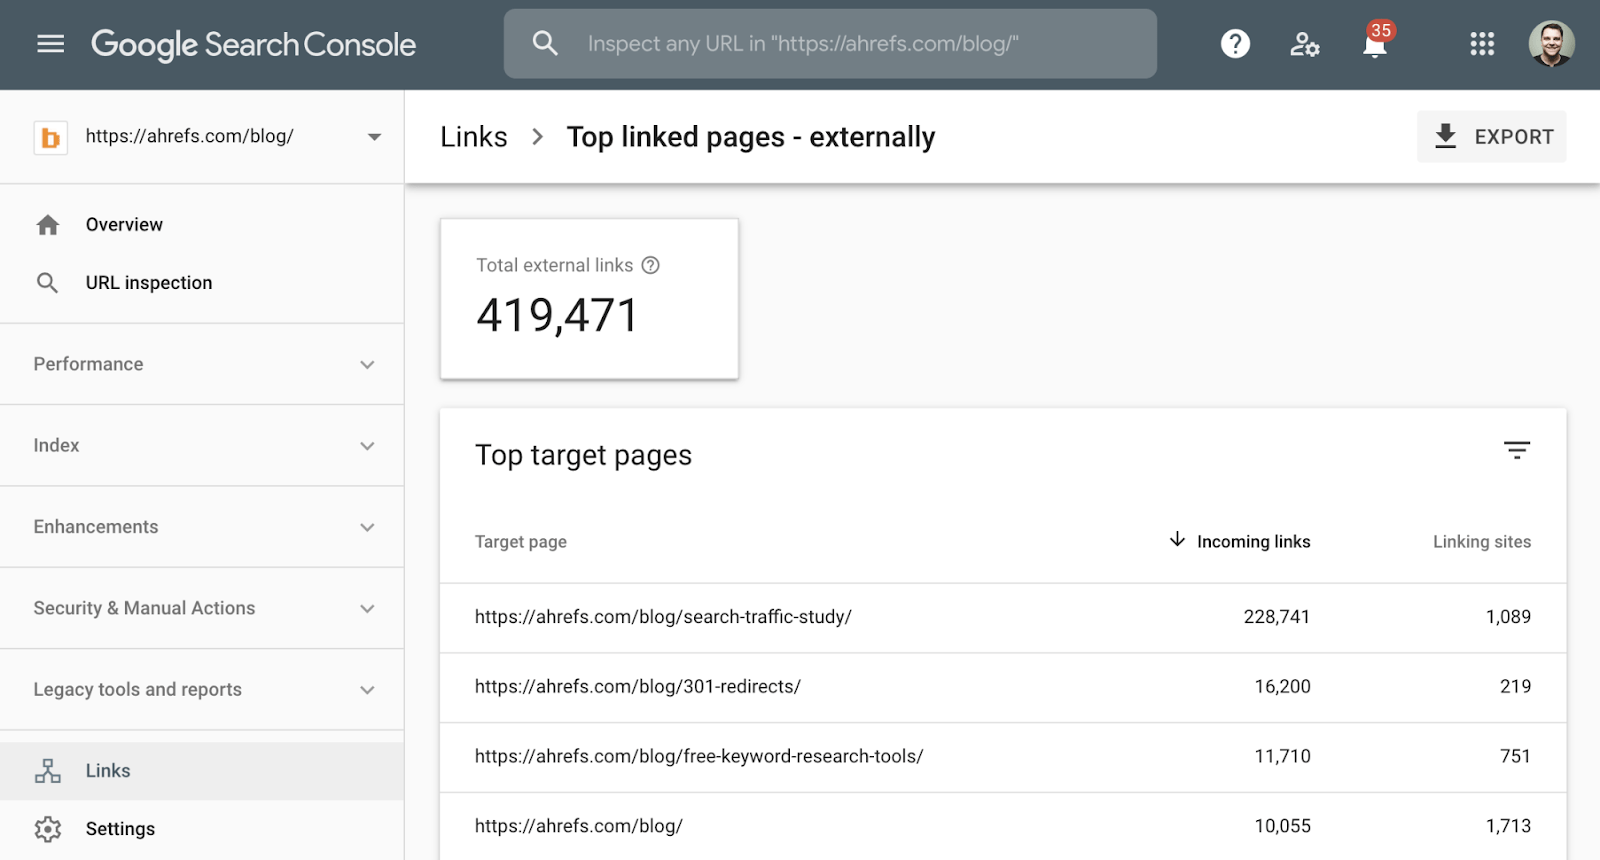 7 top linked pages